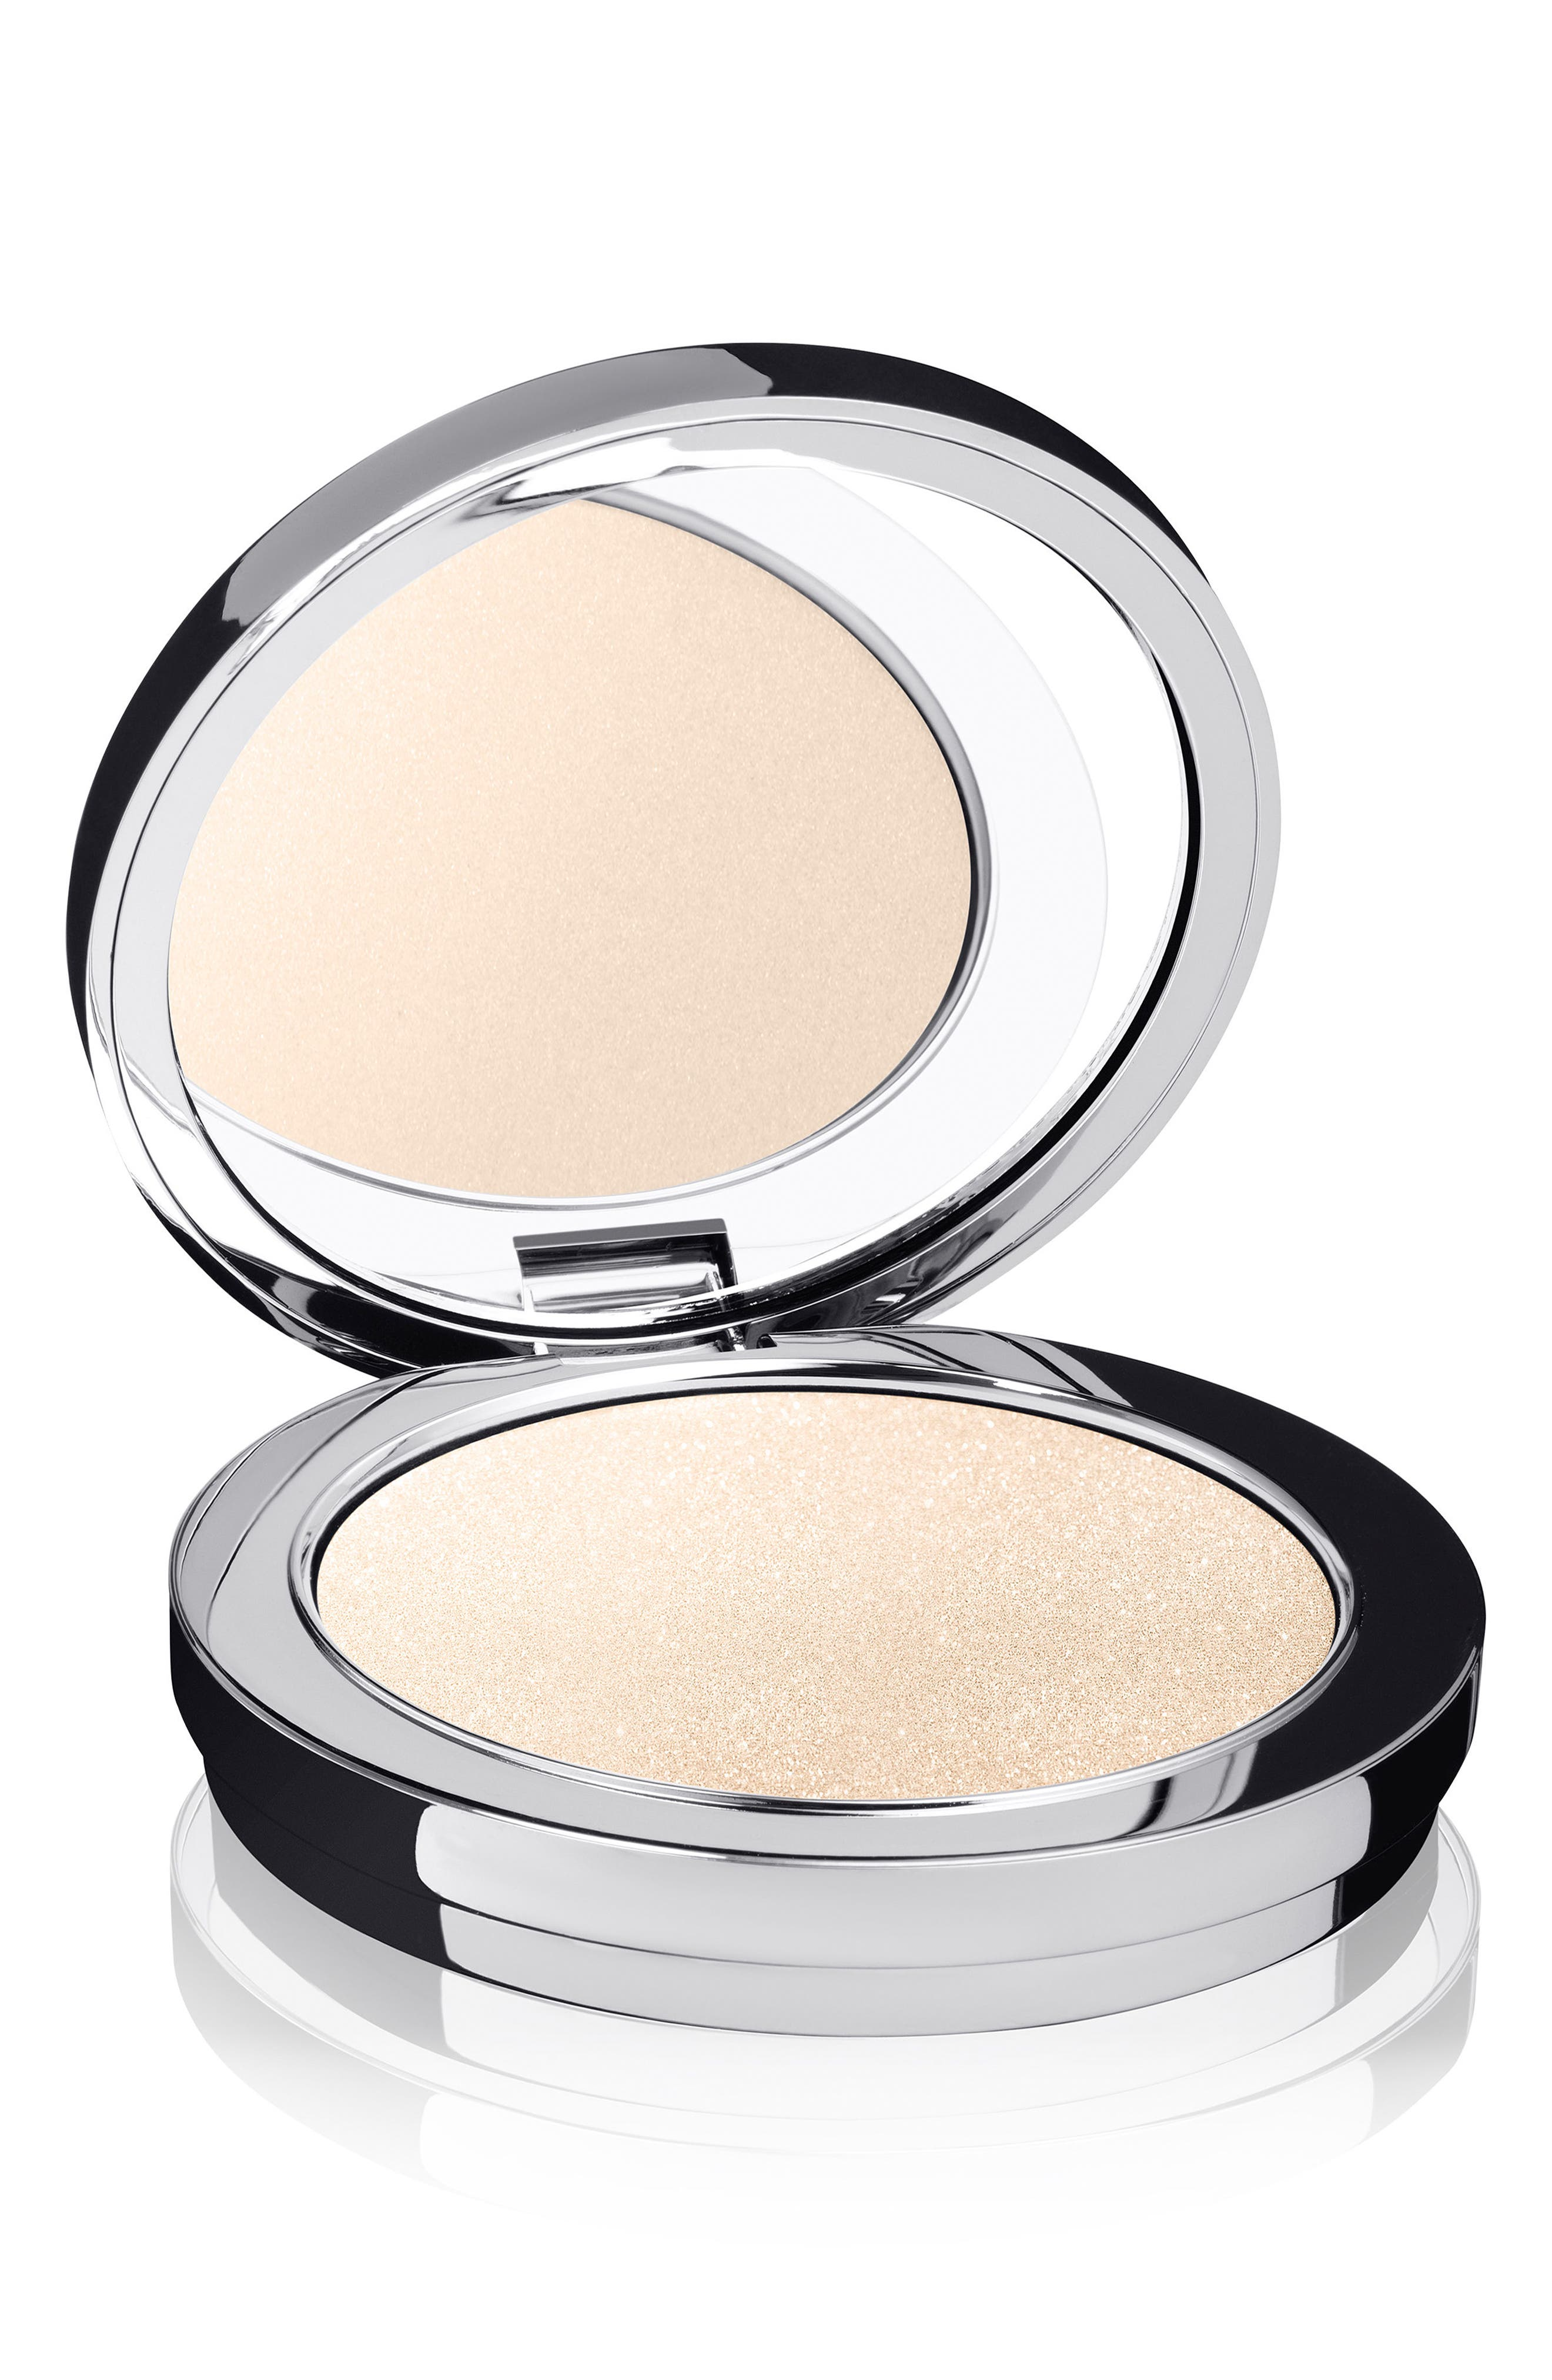 SPACE.NK.apothecary Rodial Instaglam<sup>™</sup> Deluxe Highlighting Powder Compact,                             Main thumbnail 1, color,                             2